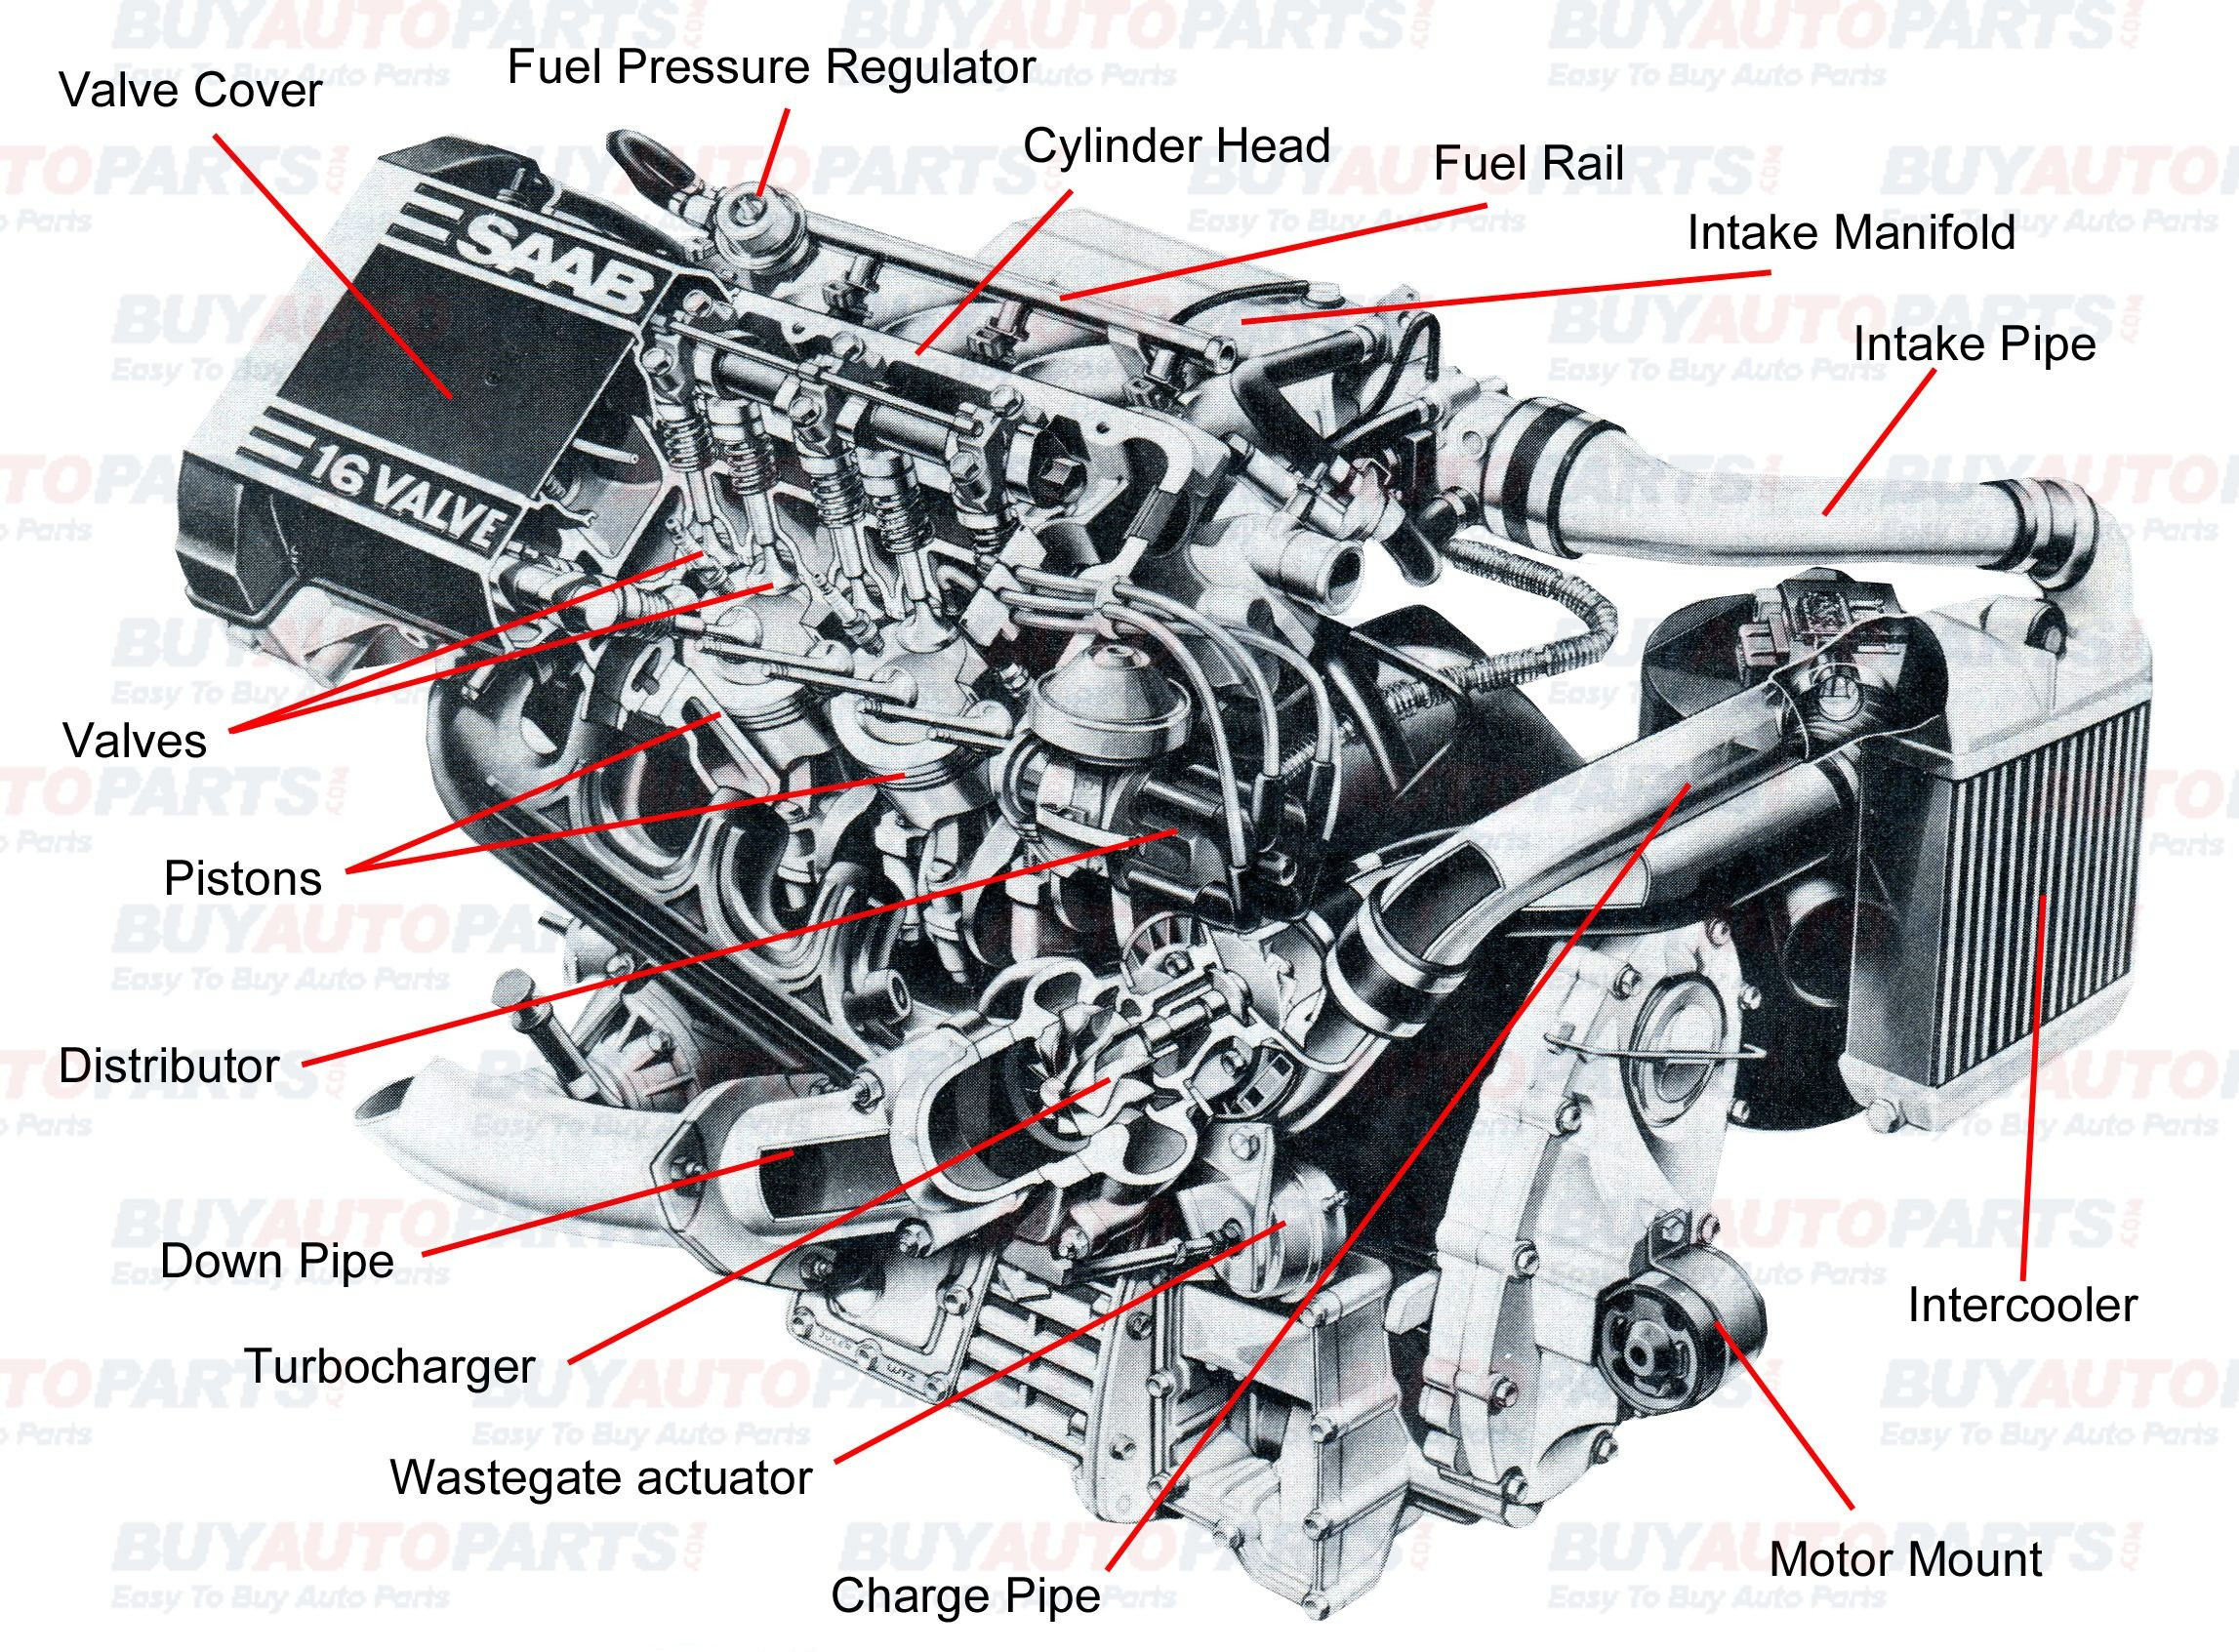 Hybrid Engine Diagram Pin by Jimmiejanet Testellamwfz On What Does An Engine with Turbo Of Hybrid Engine Diagram